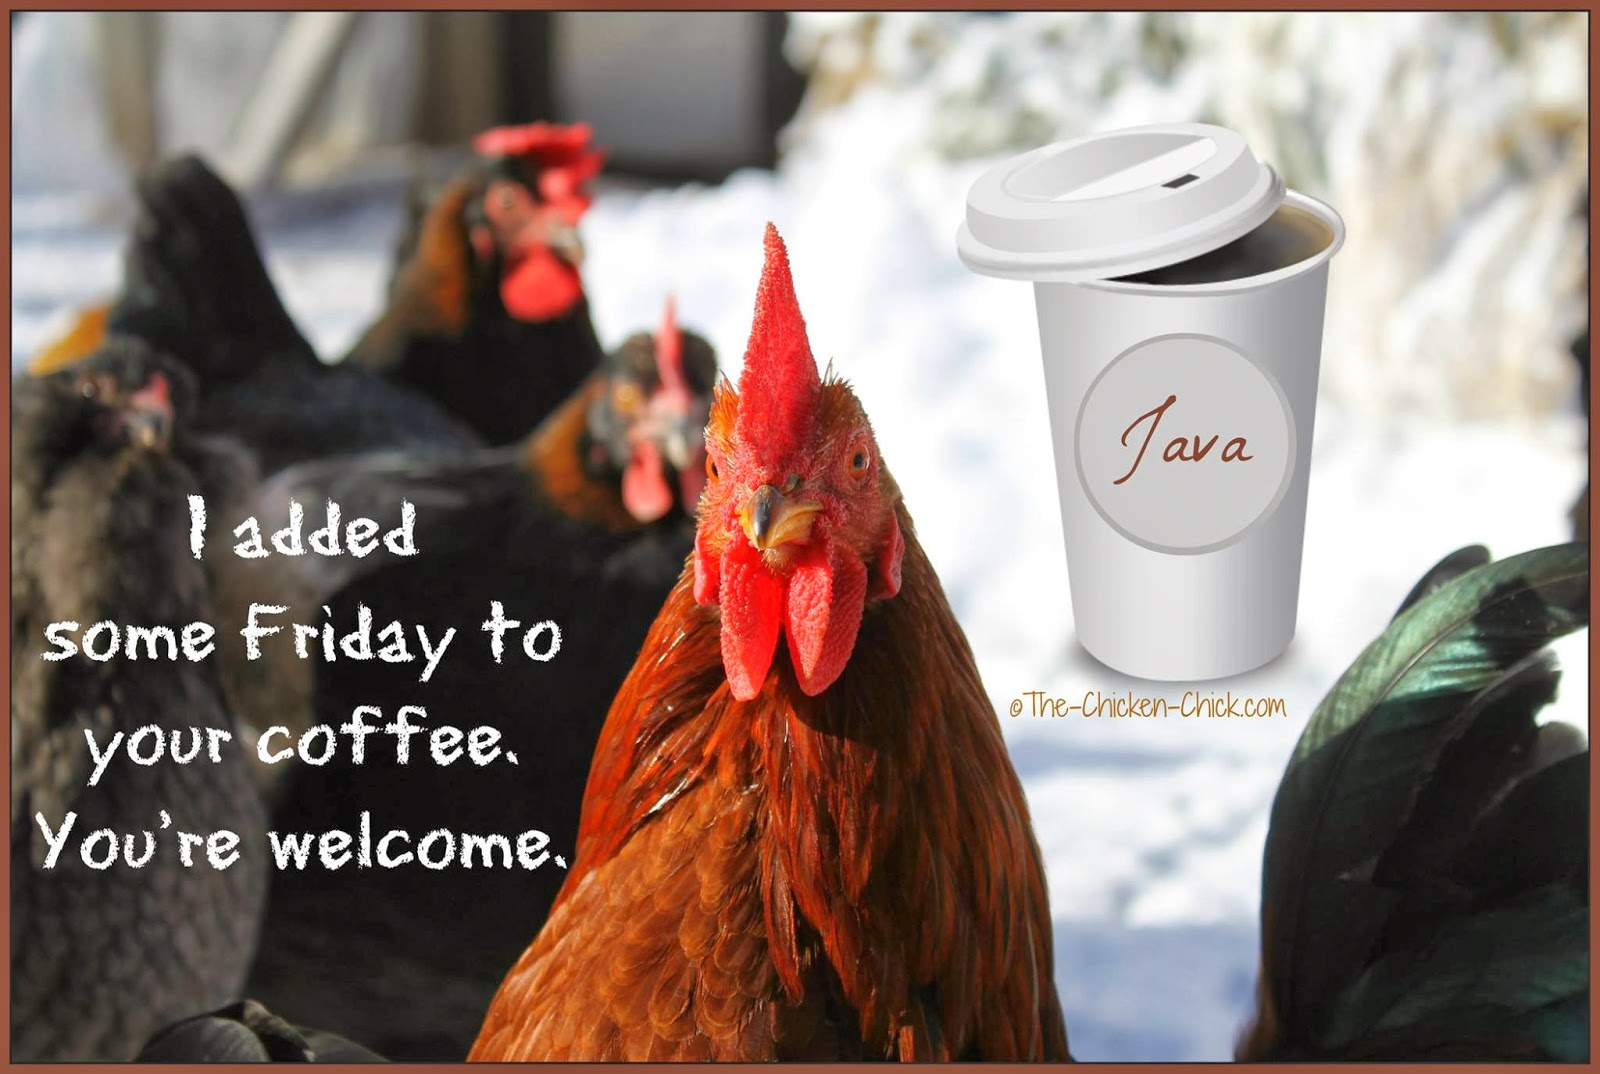 I added some Friday to your coffee. You're welcome.